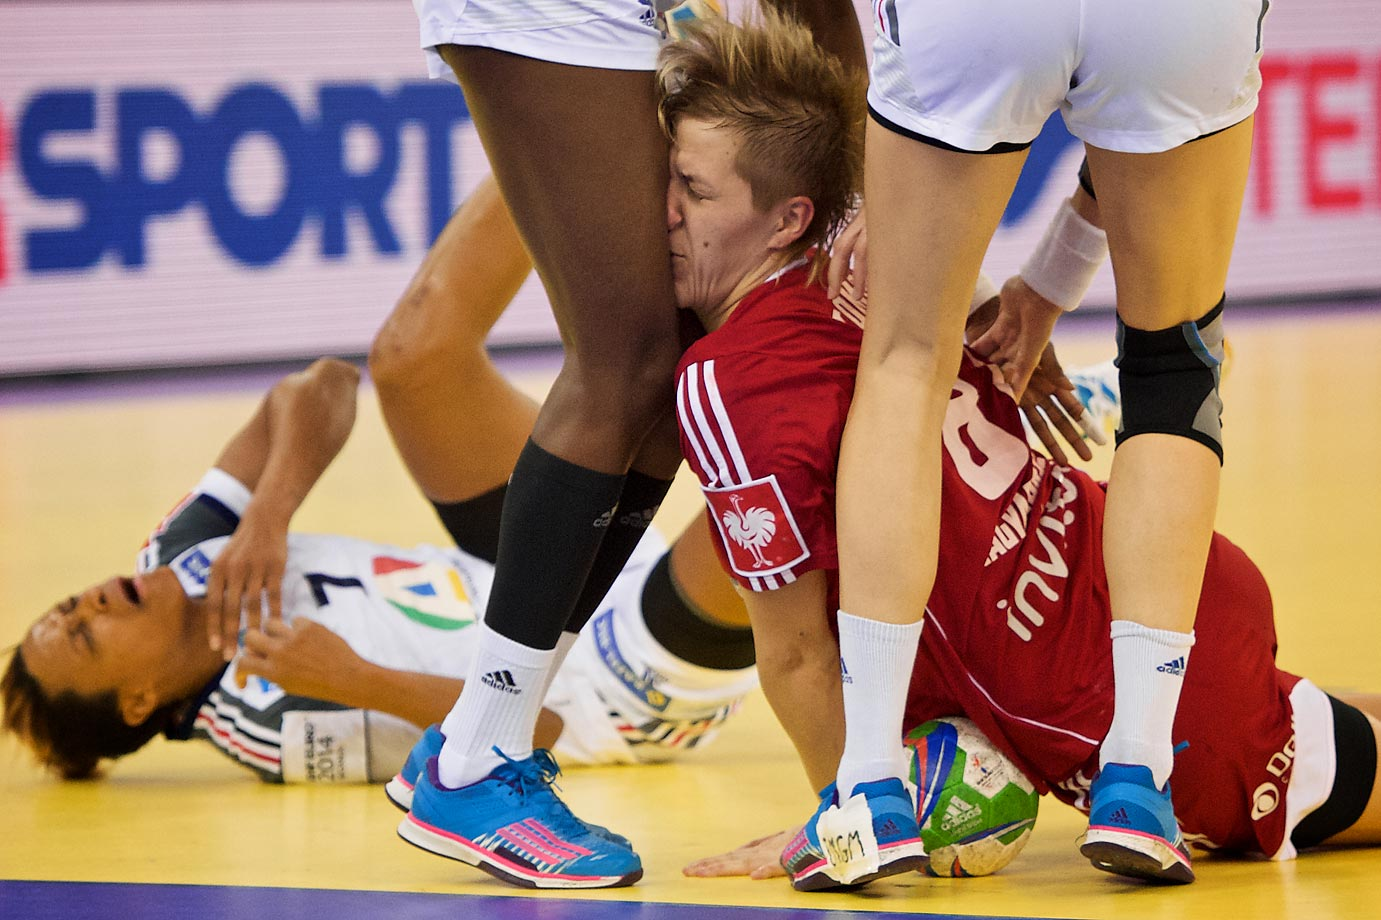 Hungary's Zsuzsanna Tomori is fouled in the 5th place match against France.